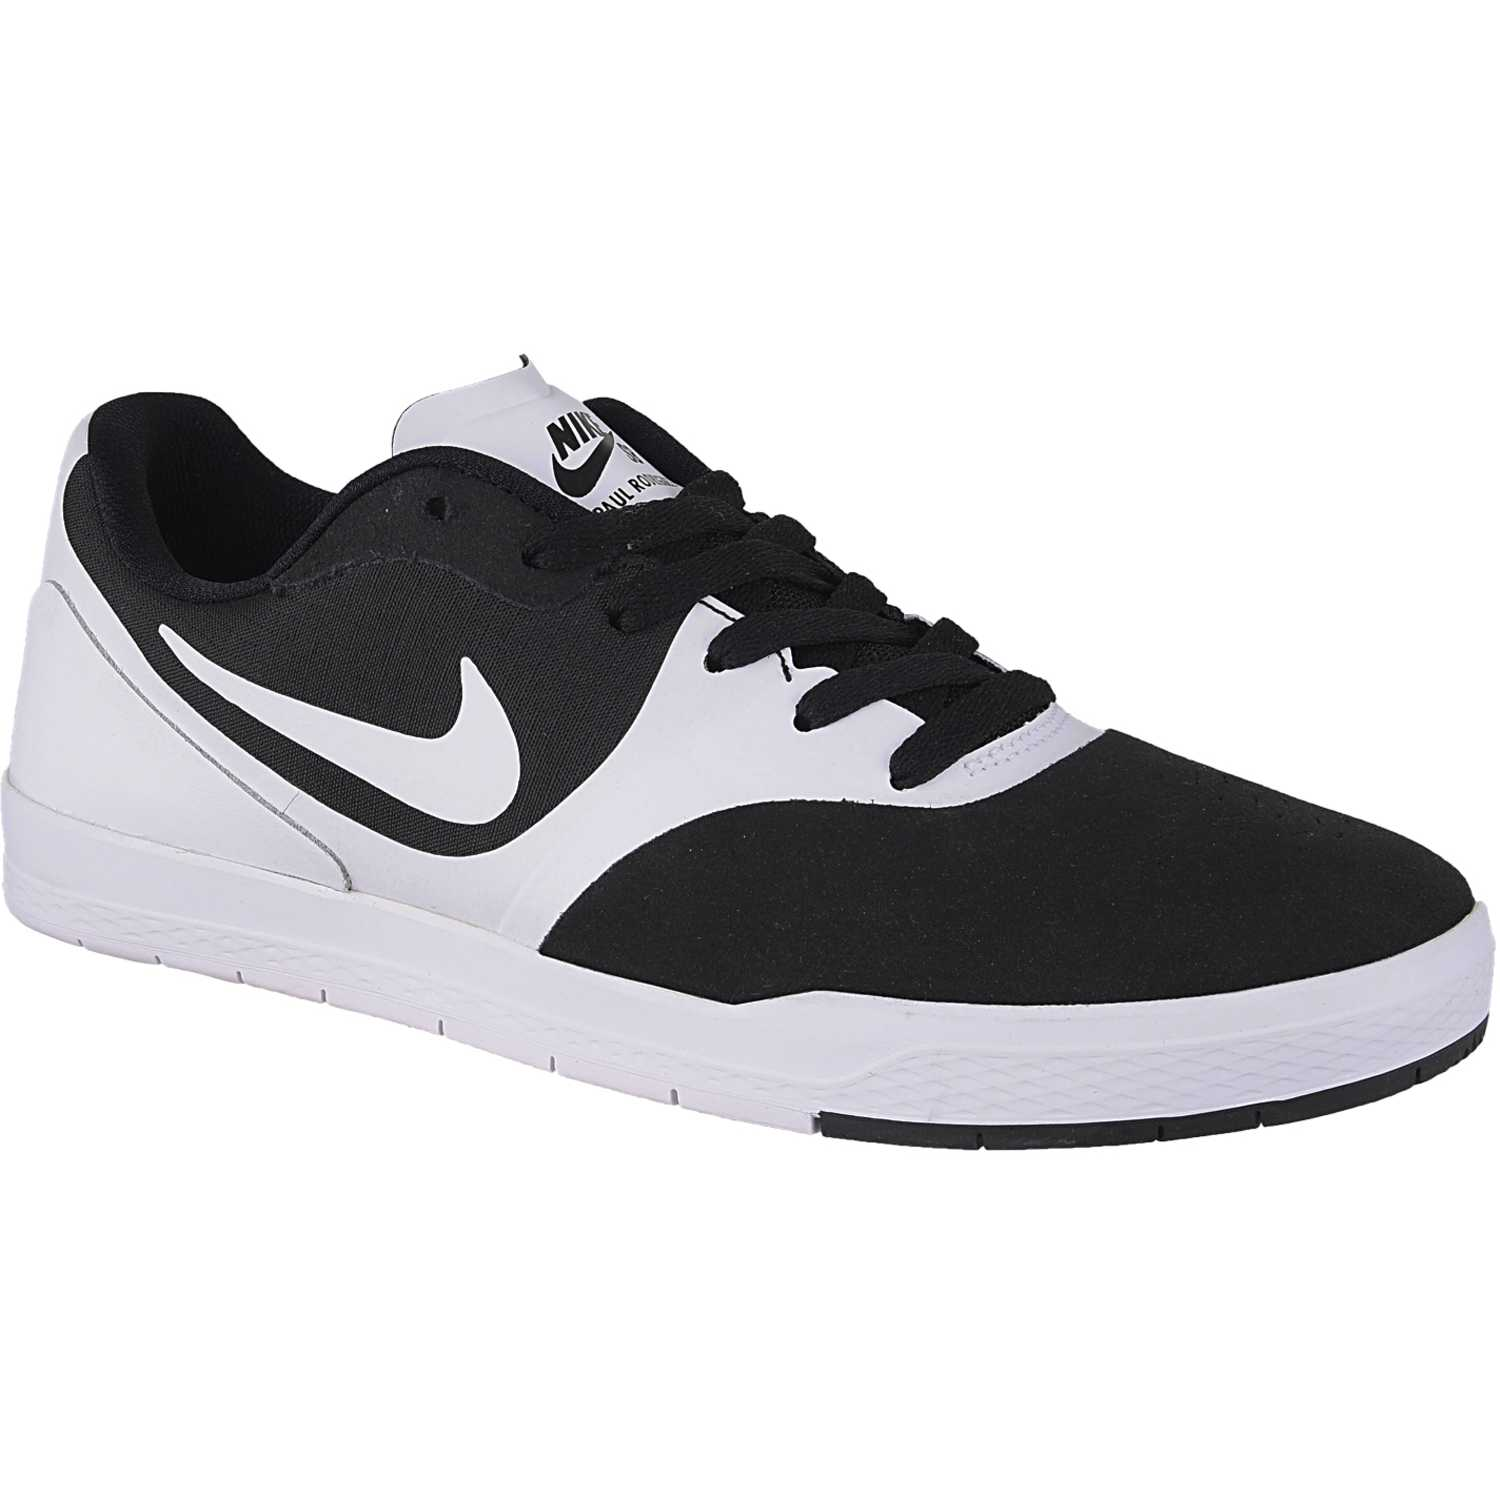 Nike paul rodriguez 9 cs Blanco negro |